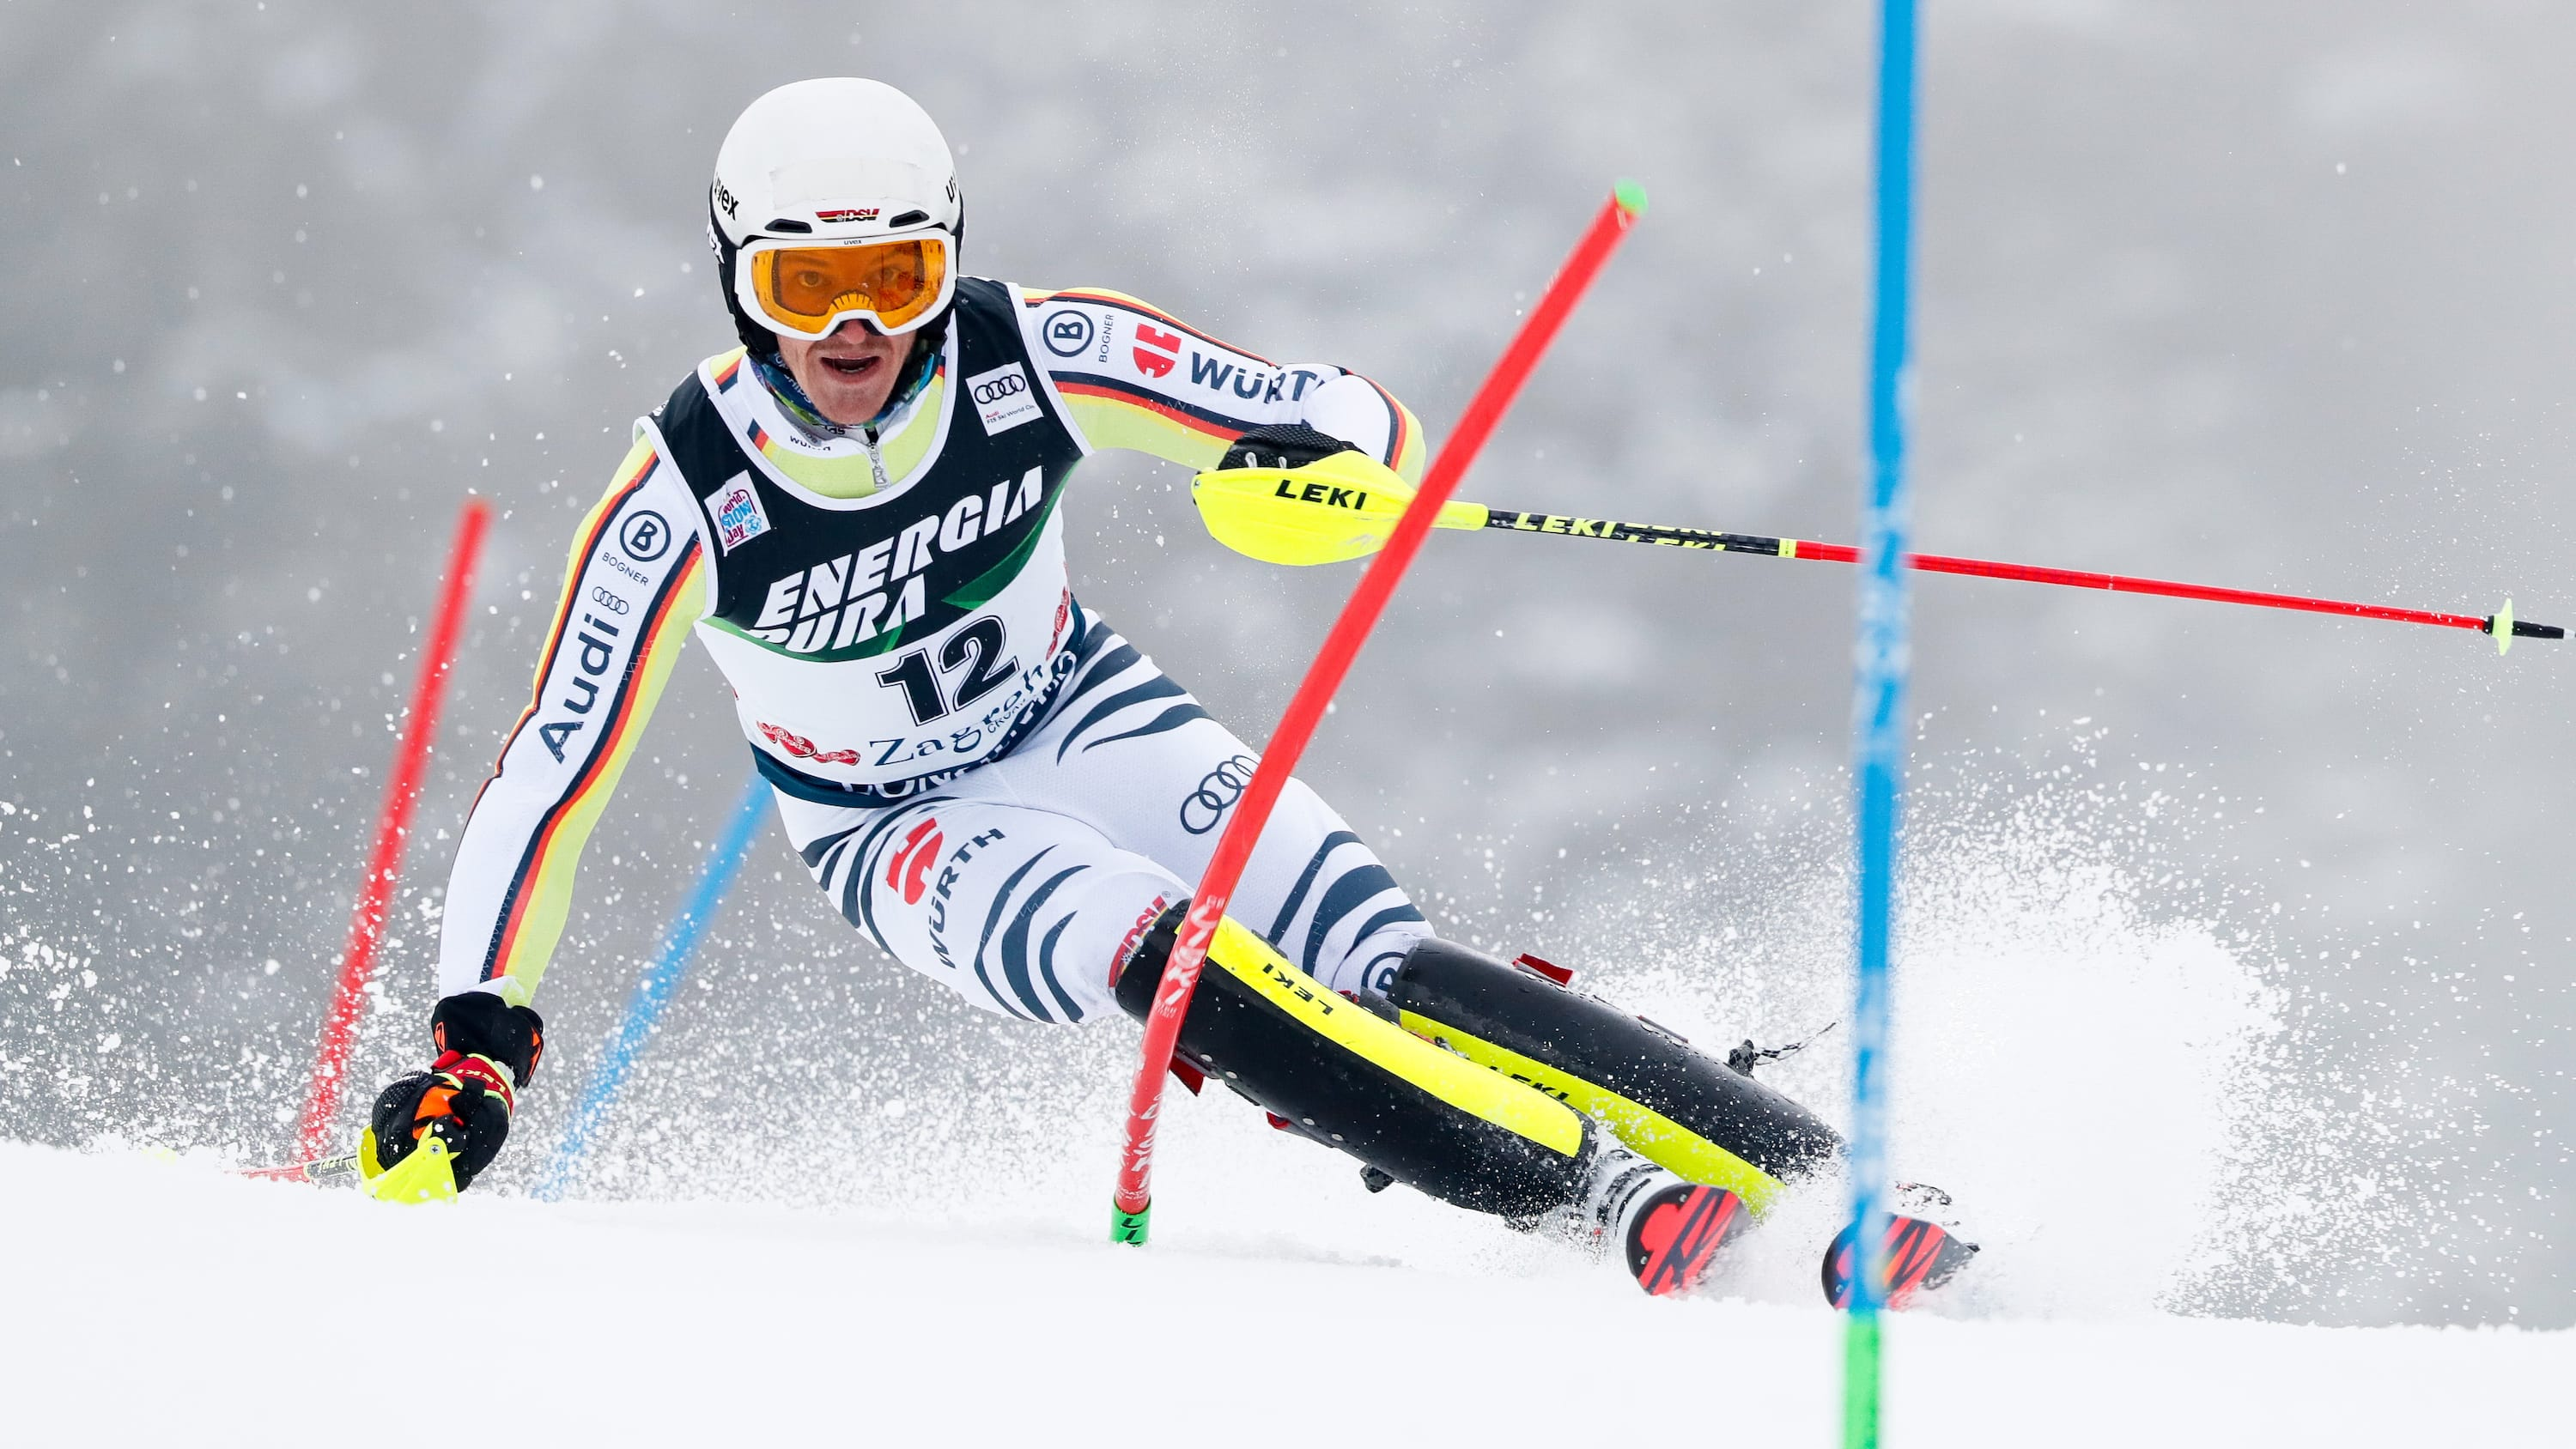 Strasser wins 1st World Cup slalom event of 2021 | CBC Sports